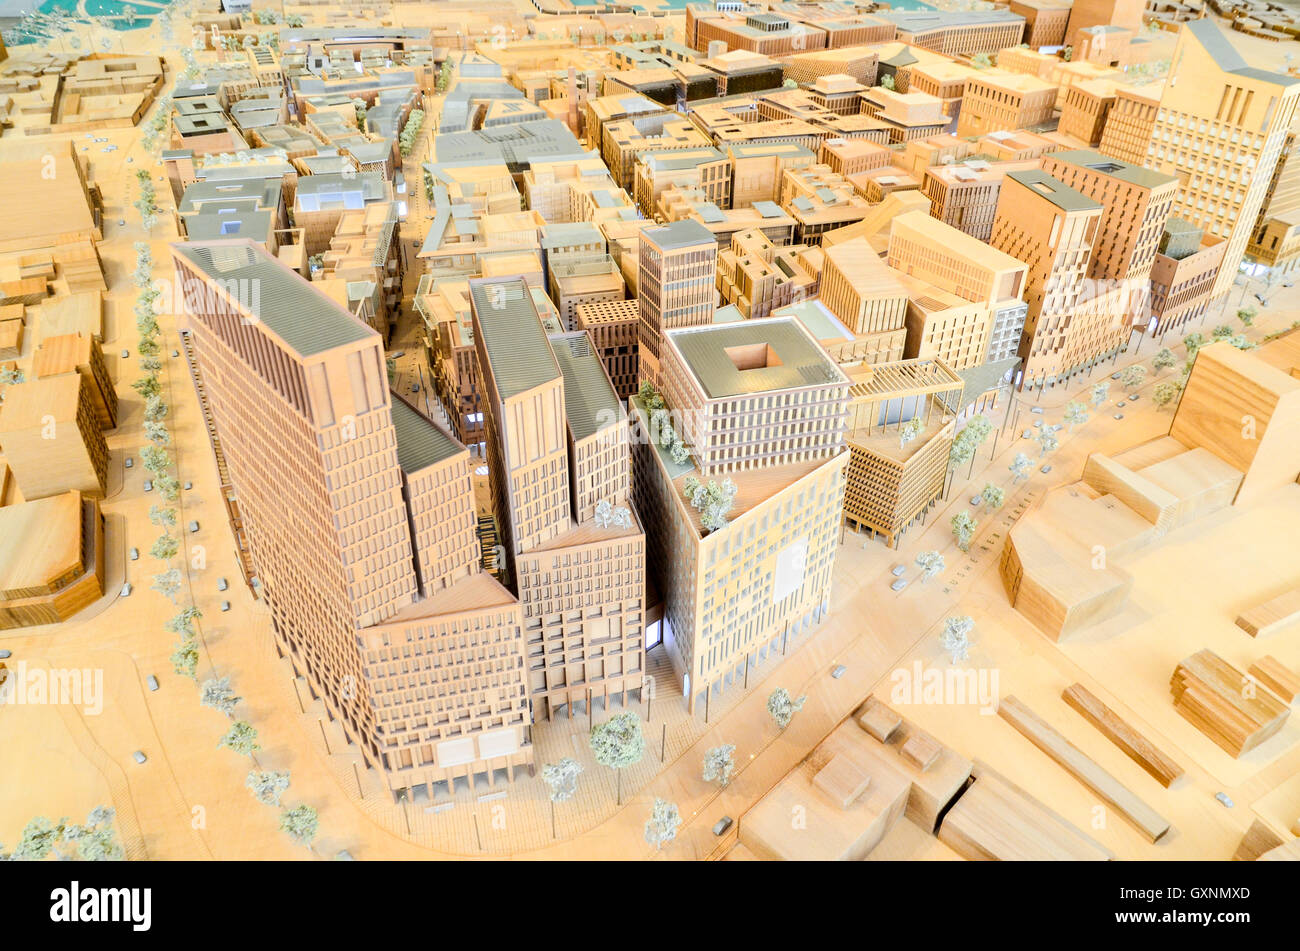 Scale model of Downtown Doha at the Msheireb Enrichment Centre - Stock Image